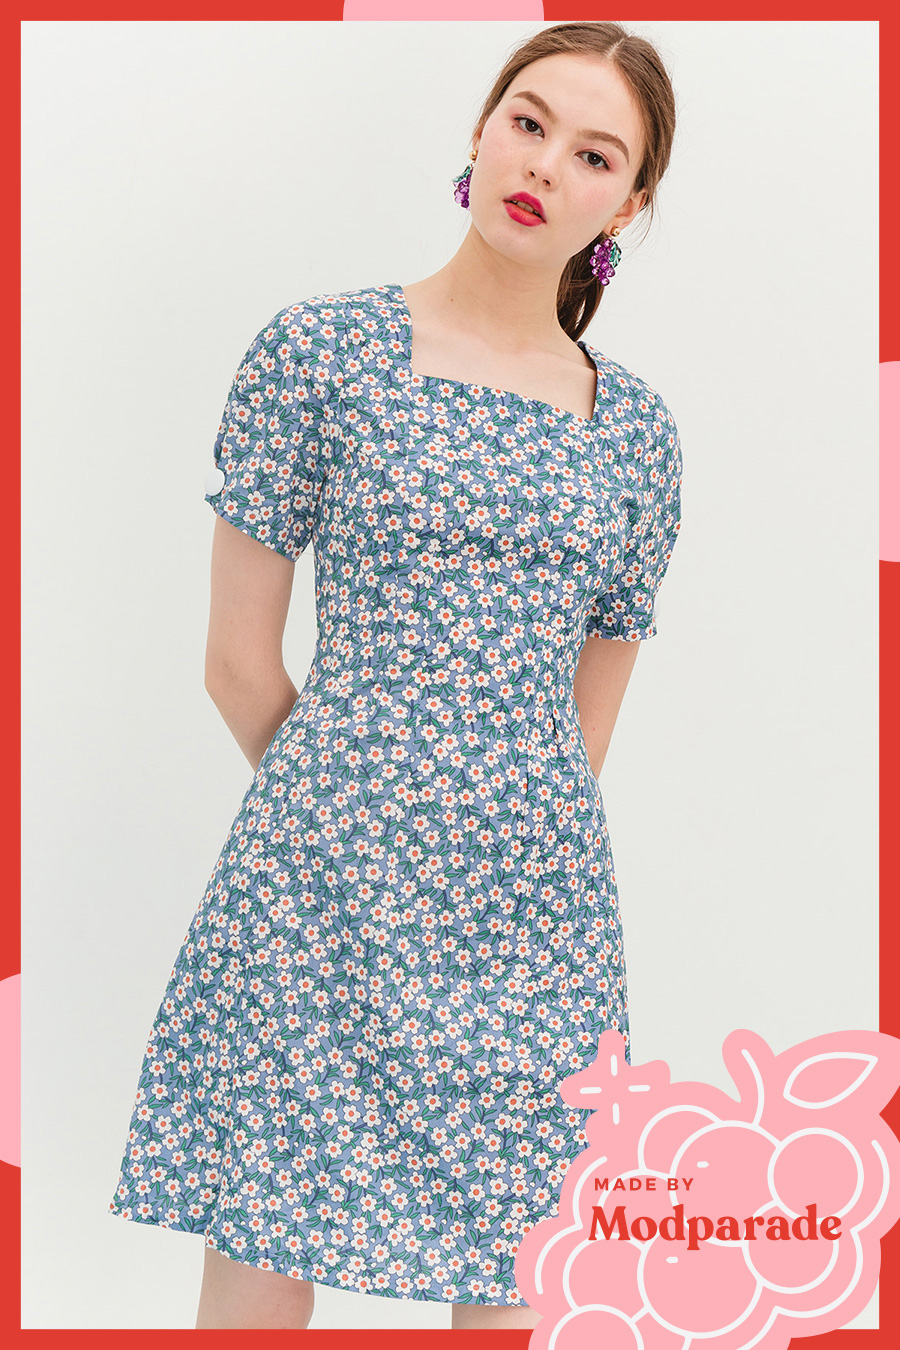 LARKIN DRESS - POPPY [BY MODPARADE]